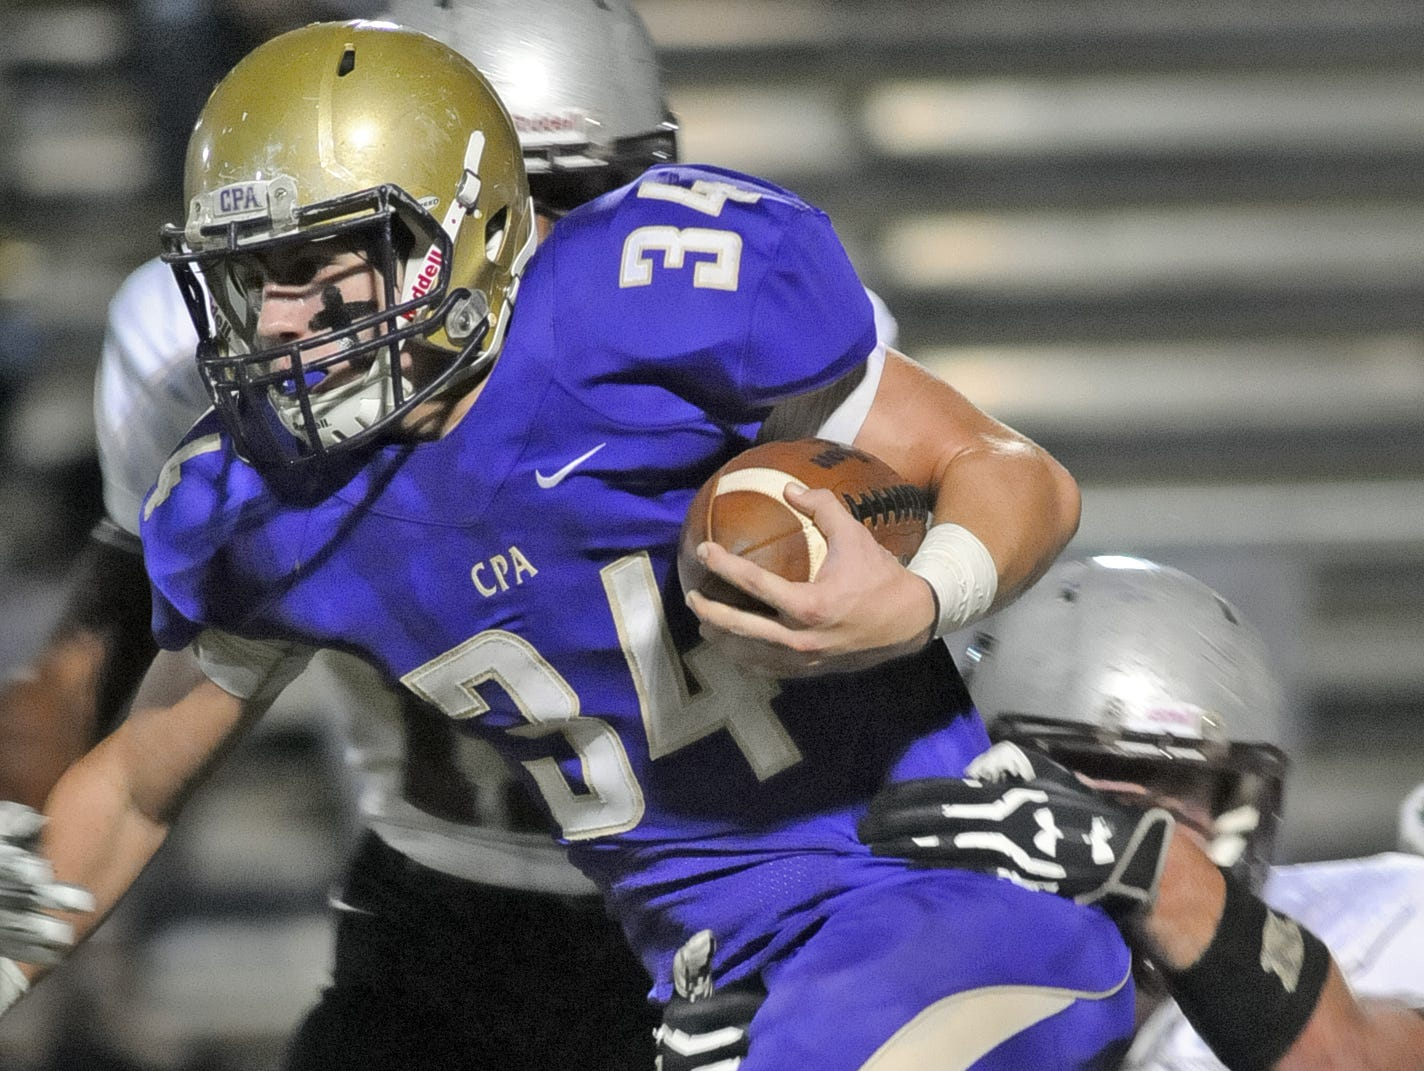 Senior running back James Deaton is hoping to help Christ Presbyterian Academy to its fourth consecutive appearance in the state championship game.